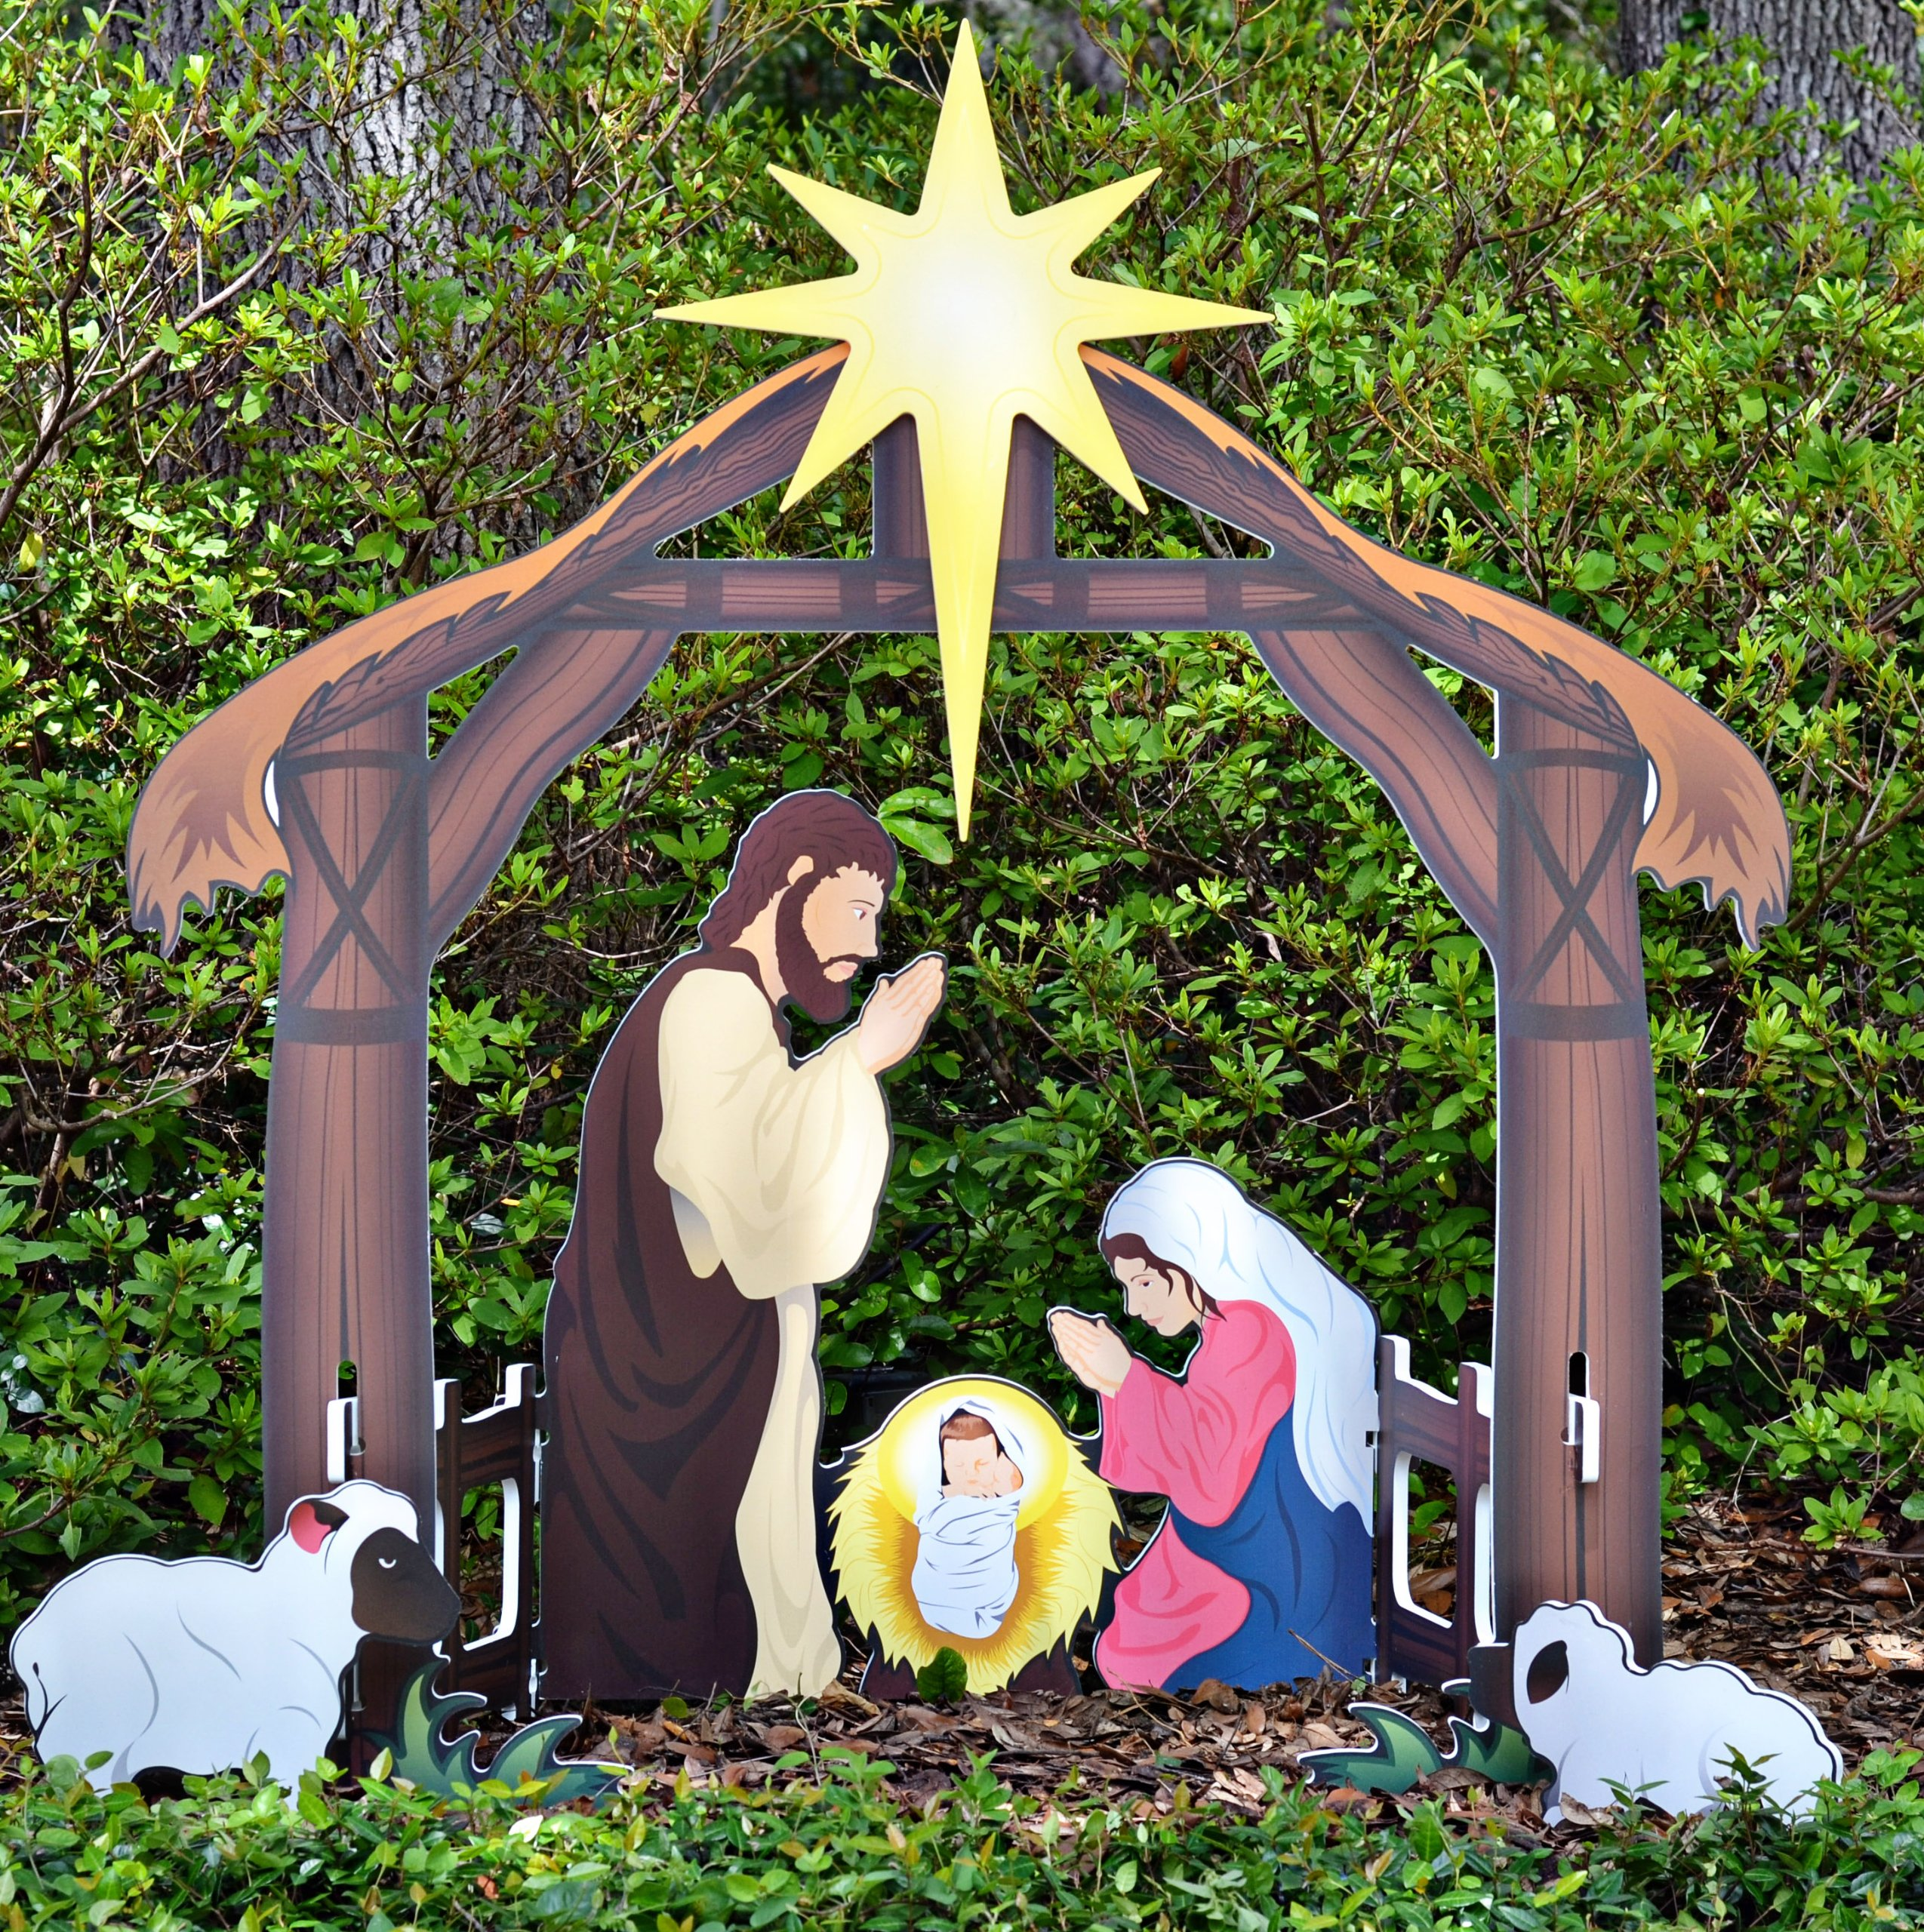 Teak Isle Holy Night Printed Outdoor Nativity Set by Teak Isle